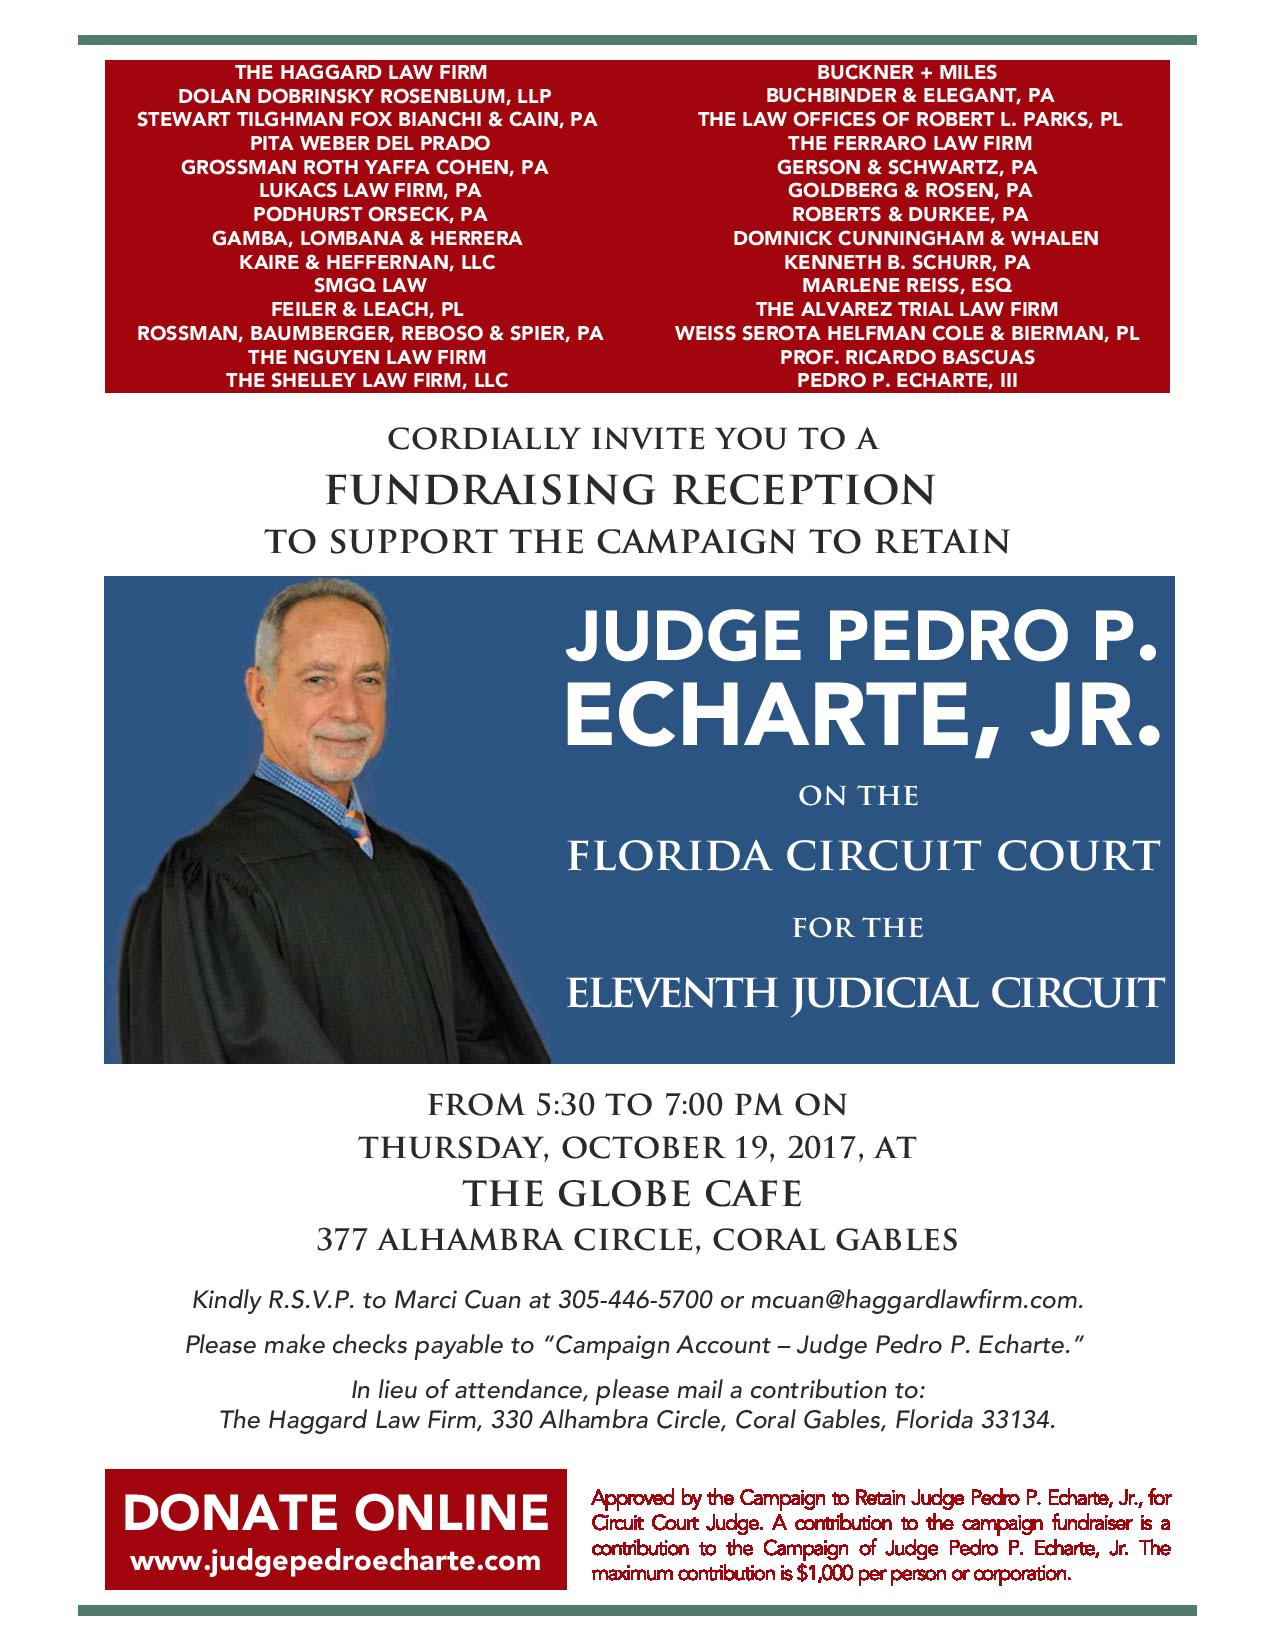 Judge Pedro Echarte, JR Fundraiser Invitation